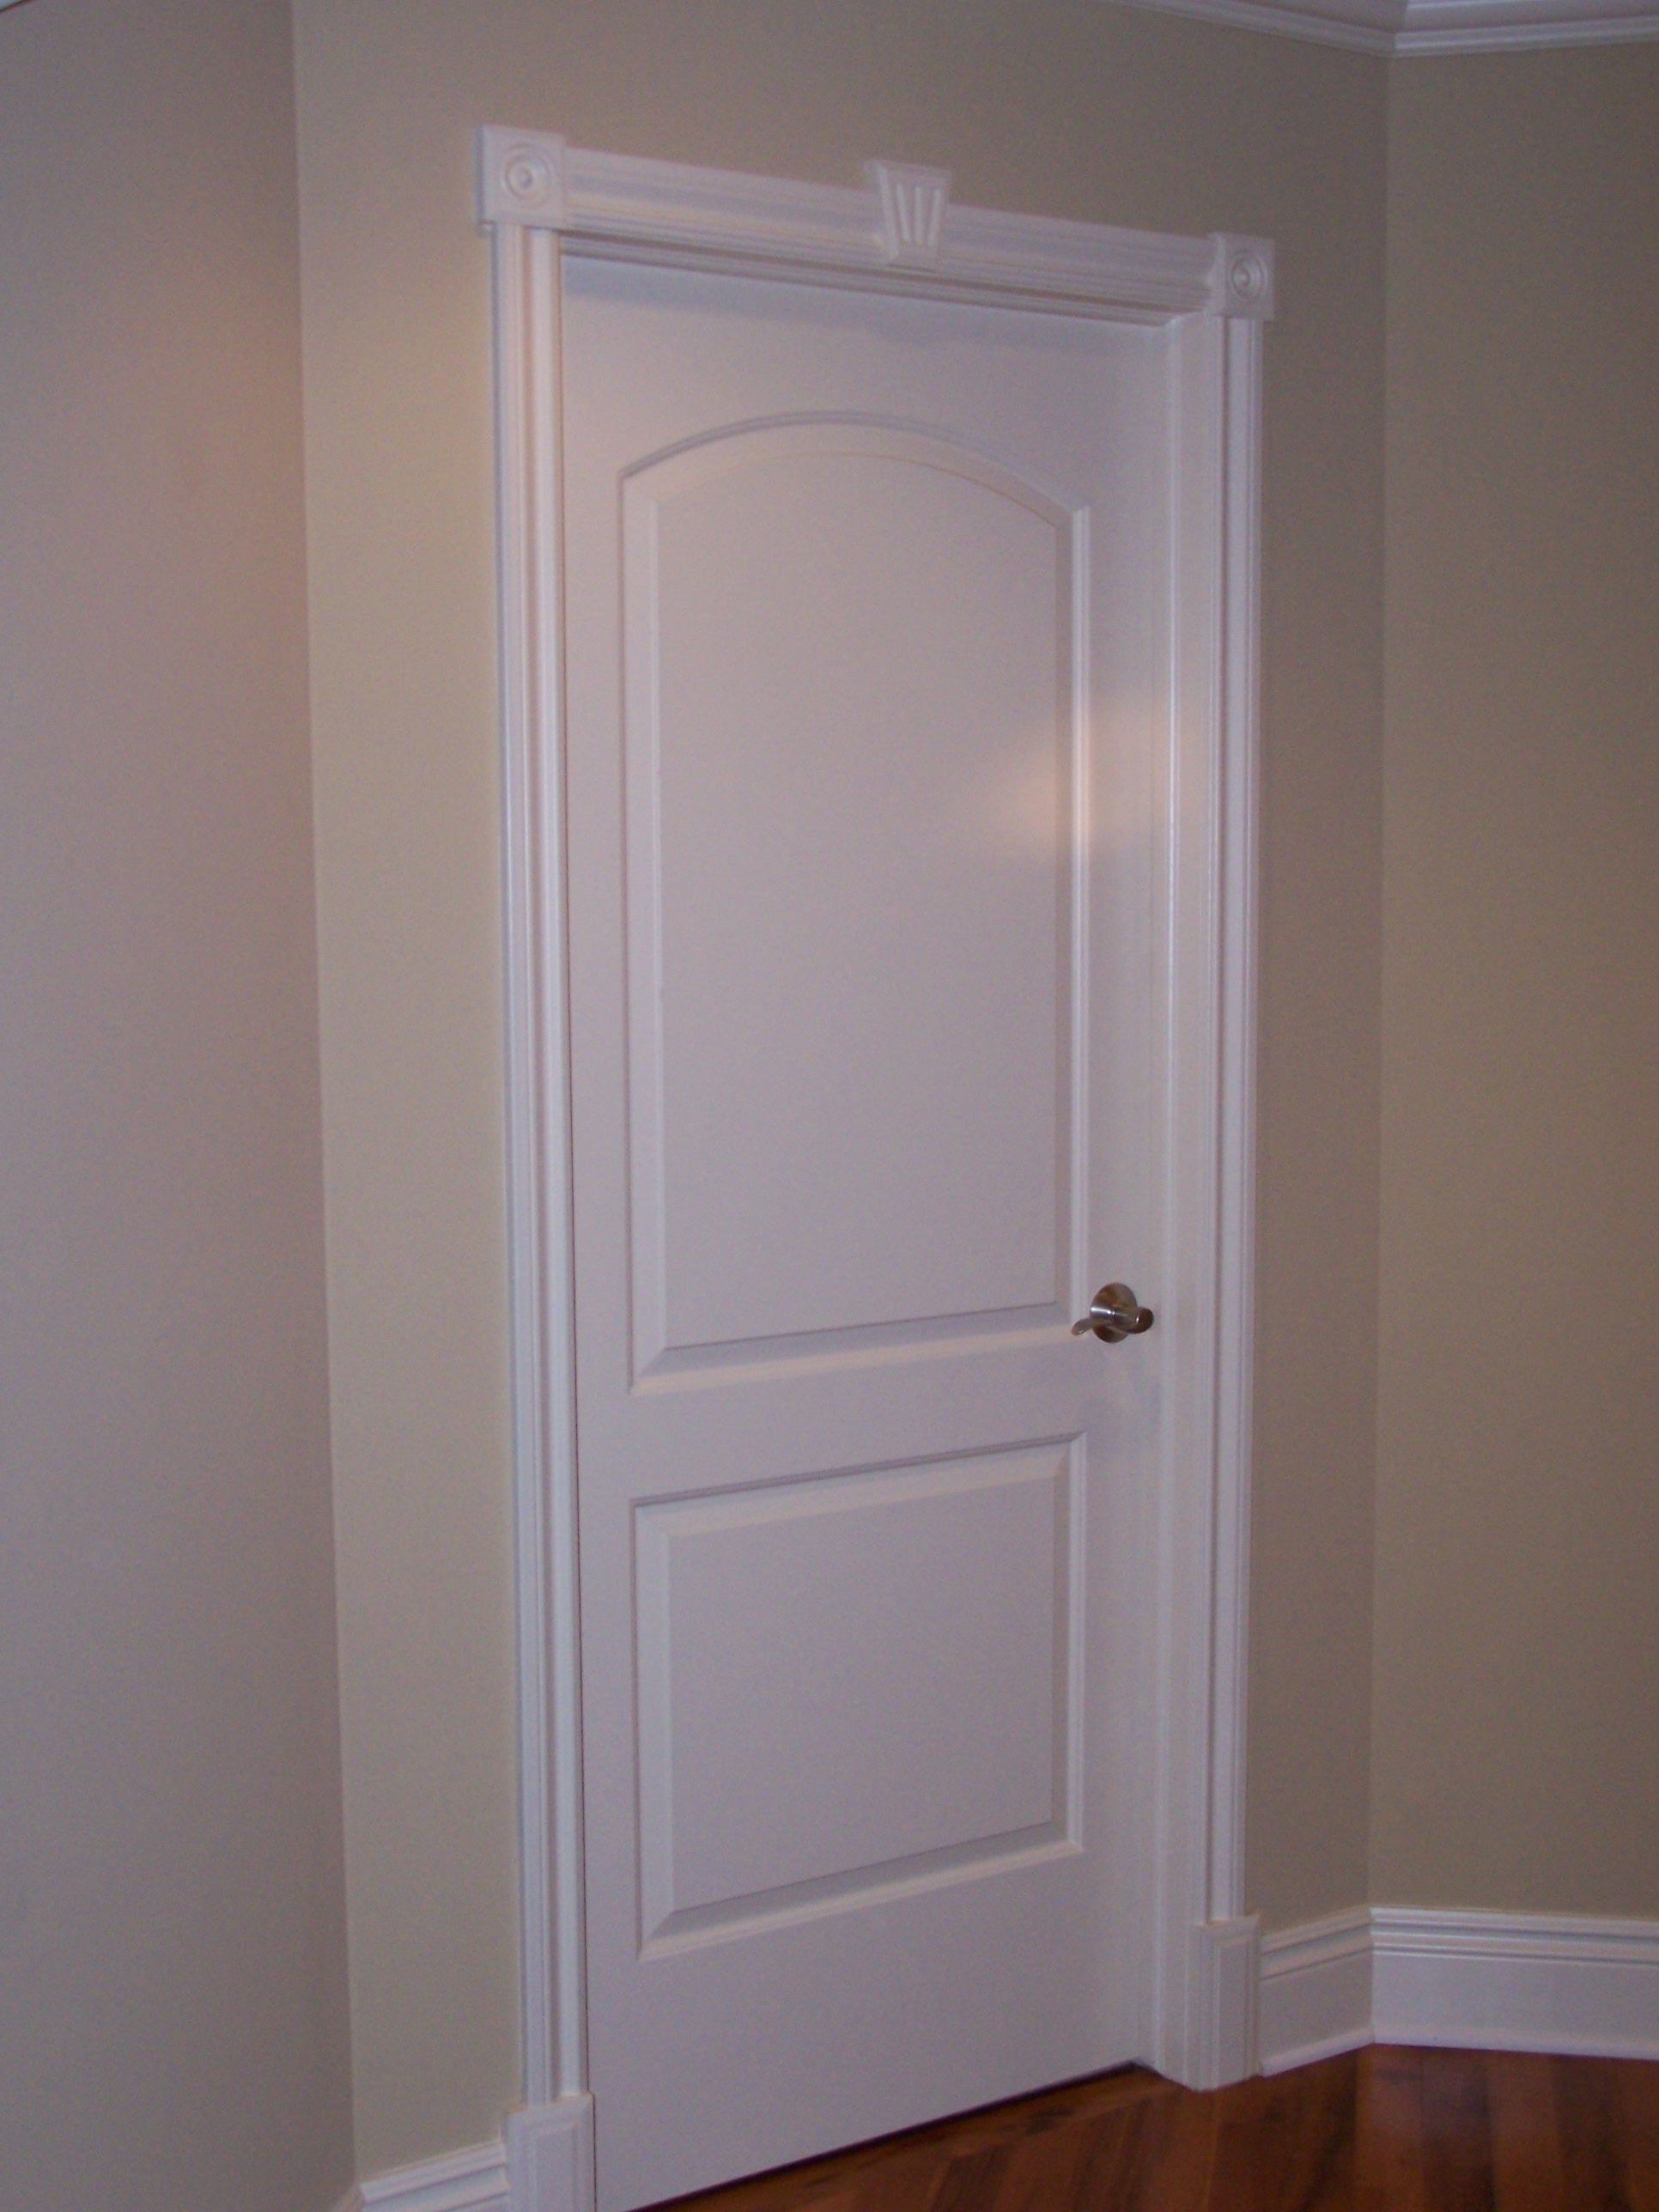 Le Meilleur Decorative Door Trim For The Home Pinterest Door Ce Mois Ci